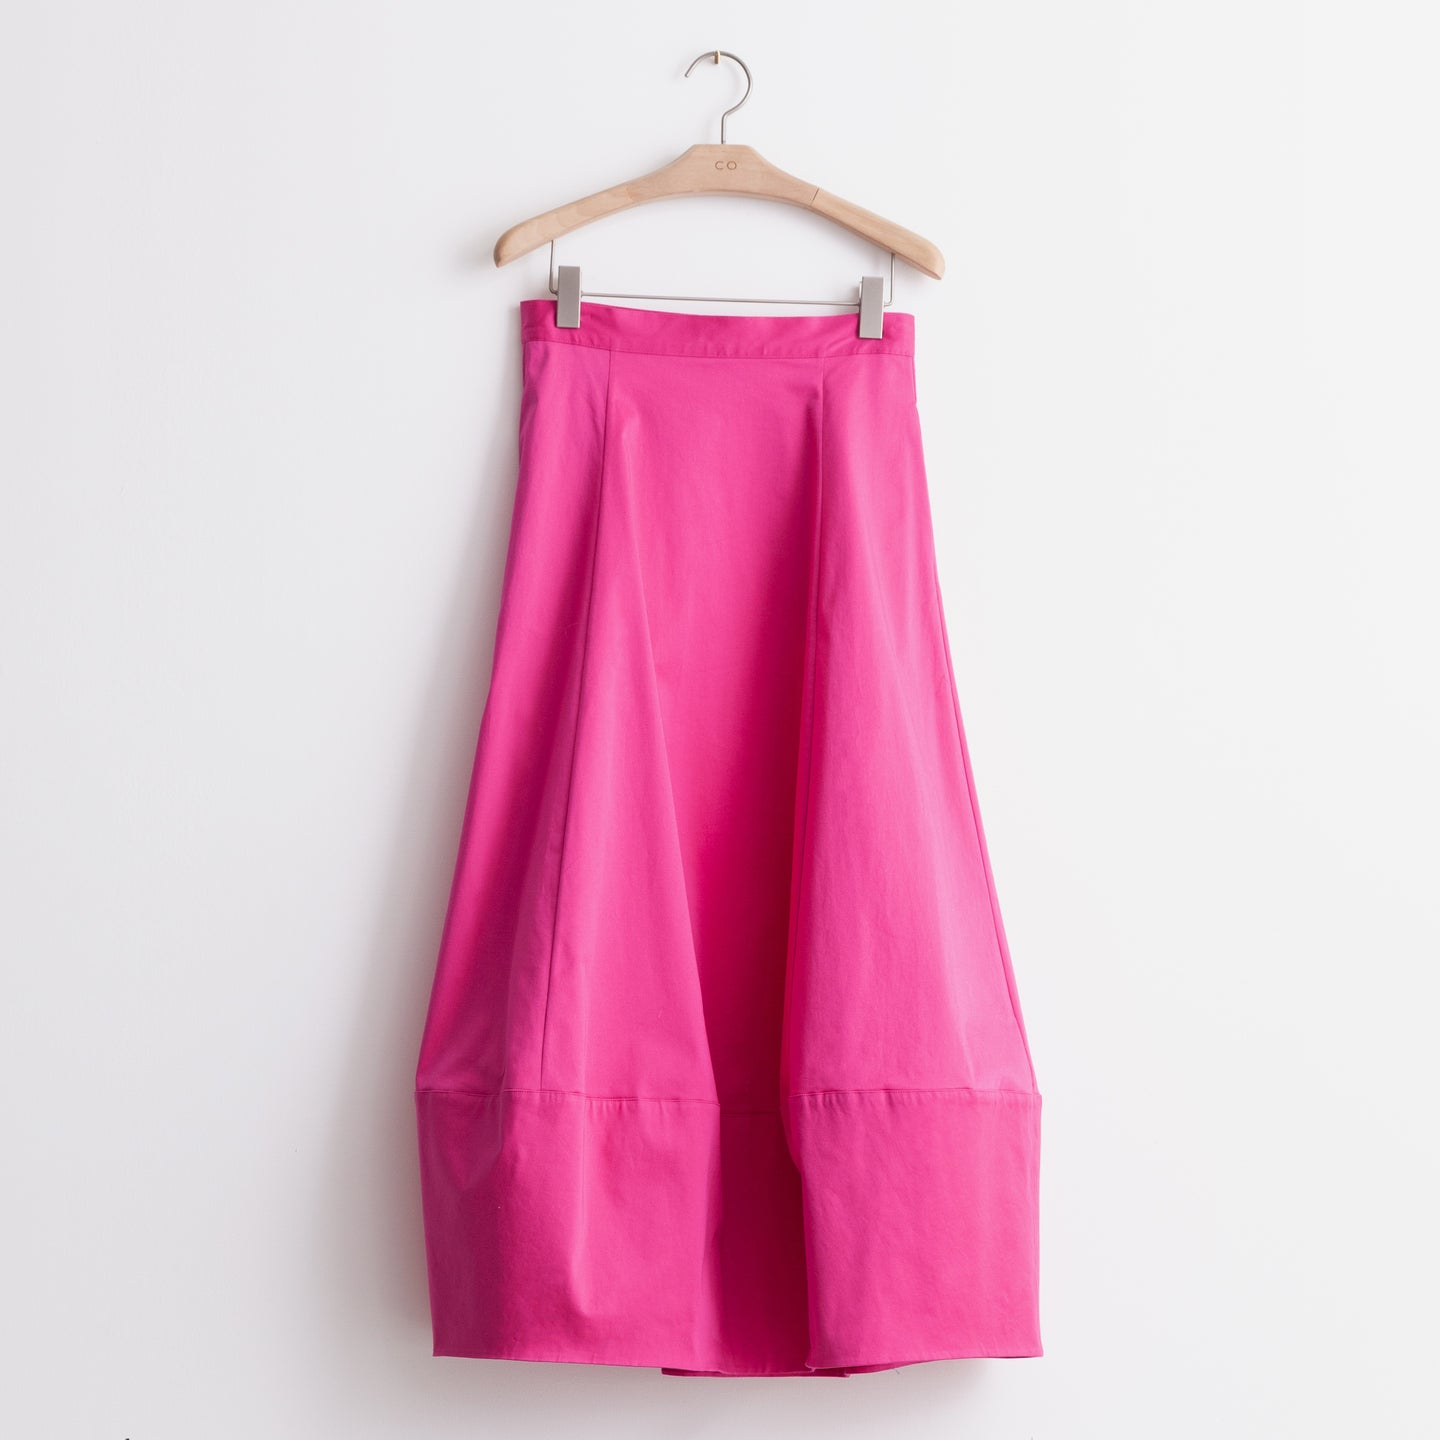 Tulip hem midi skirt in pink stretch cotton sateen. - CO